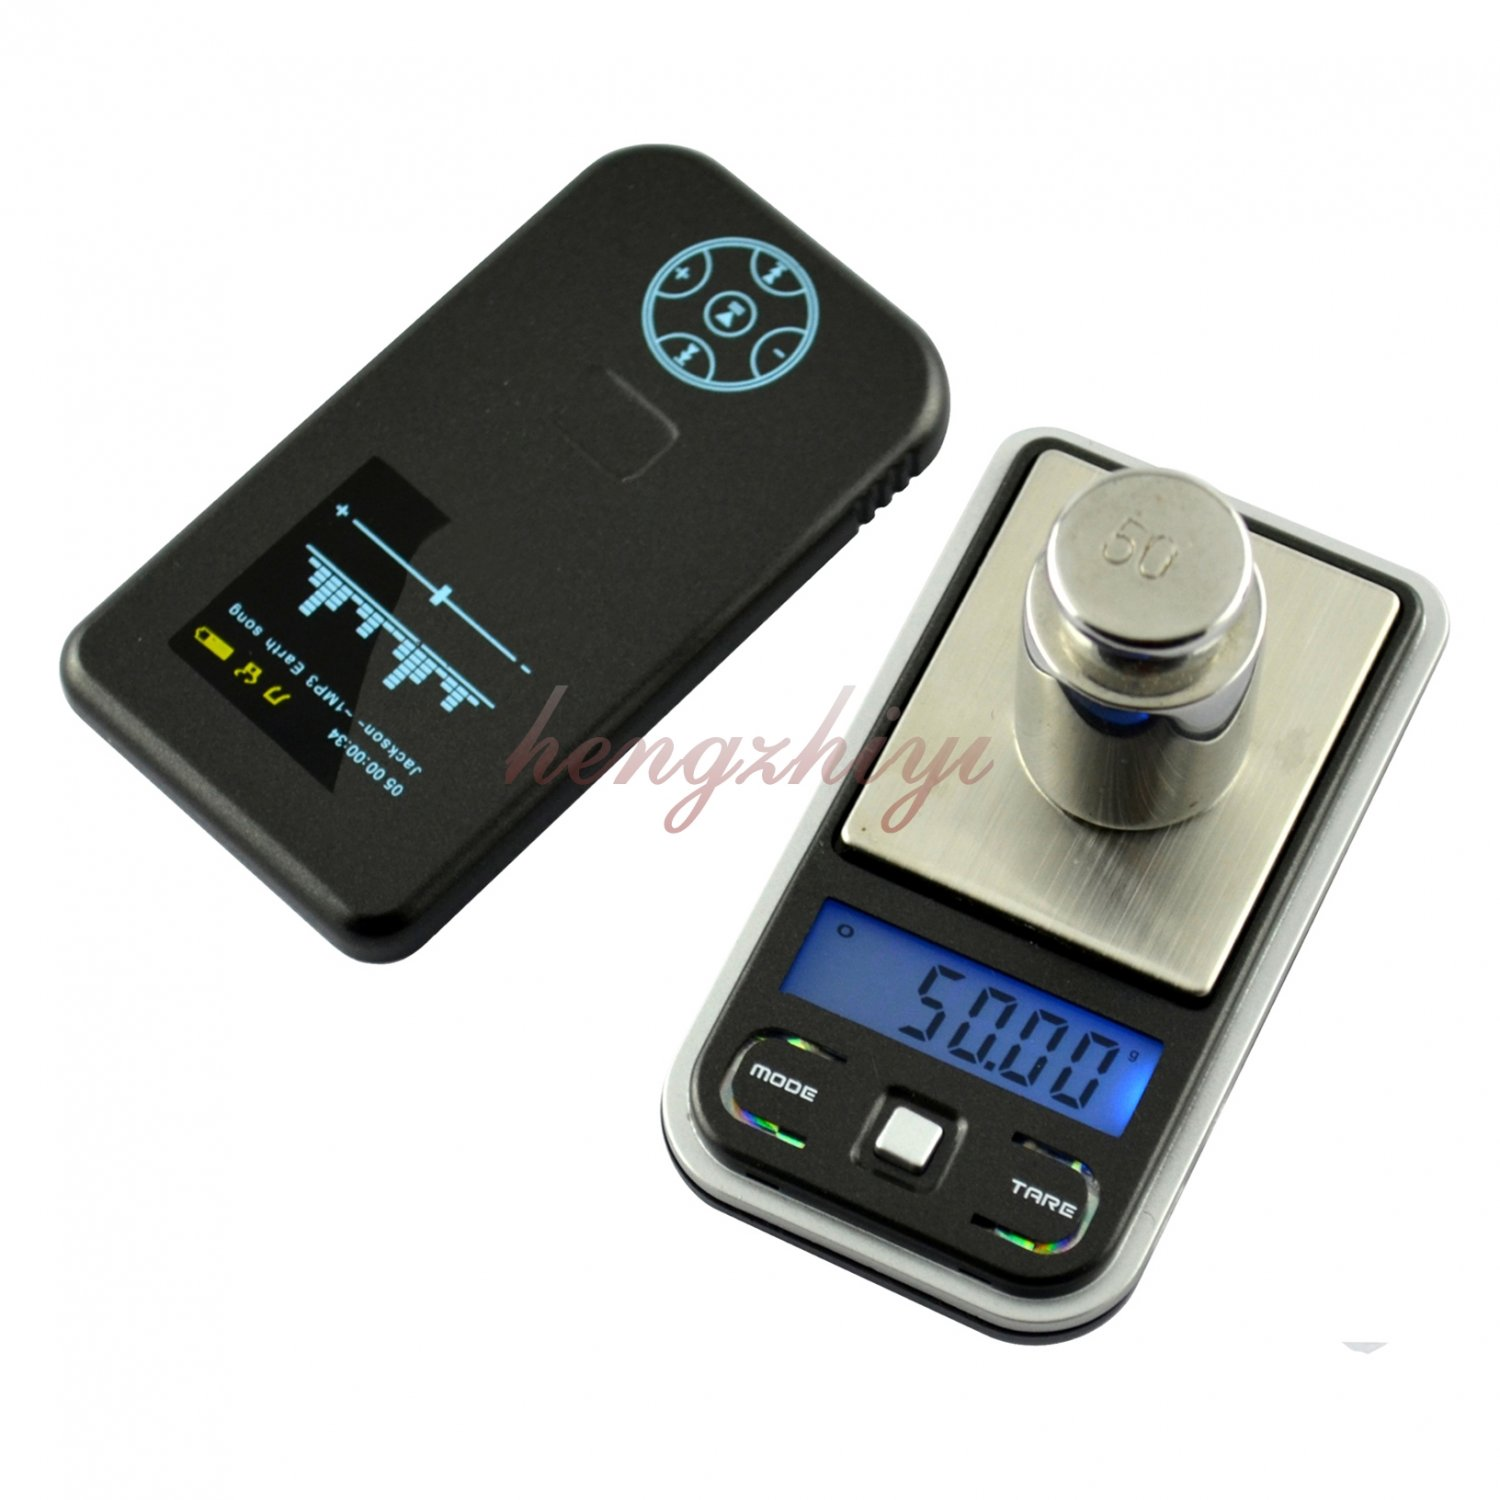 200g x 0.01g Mini Digital Electronic Jewelry Pocket Carat Scale Weighing Balance, Free Shipping